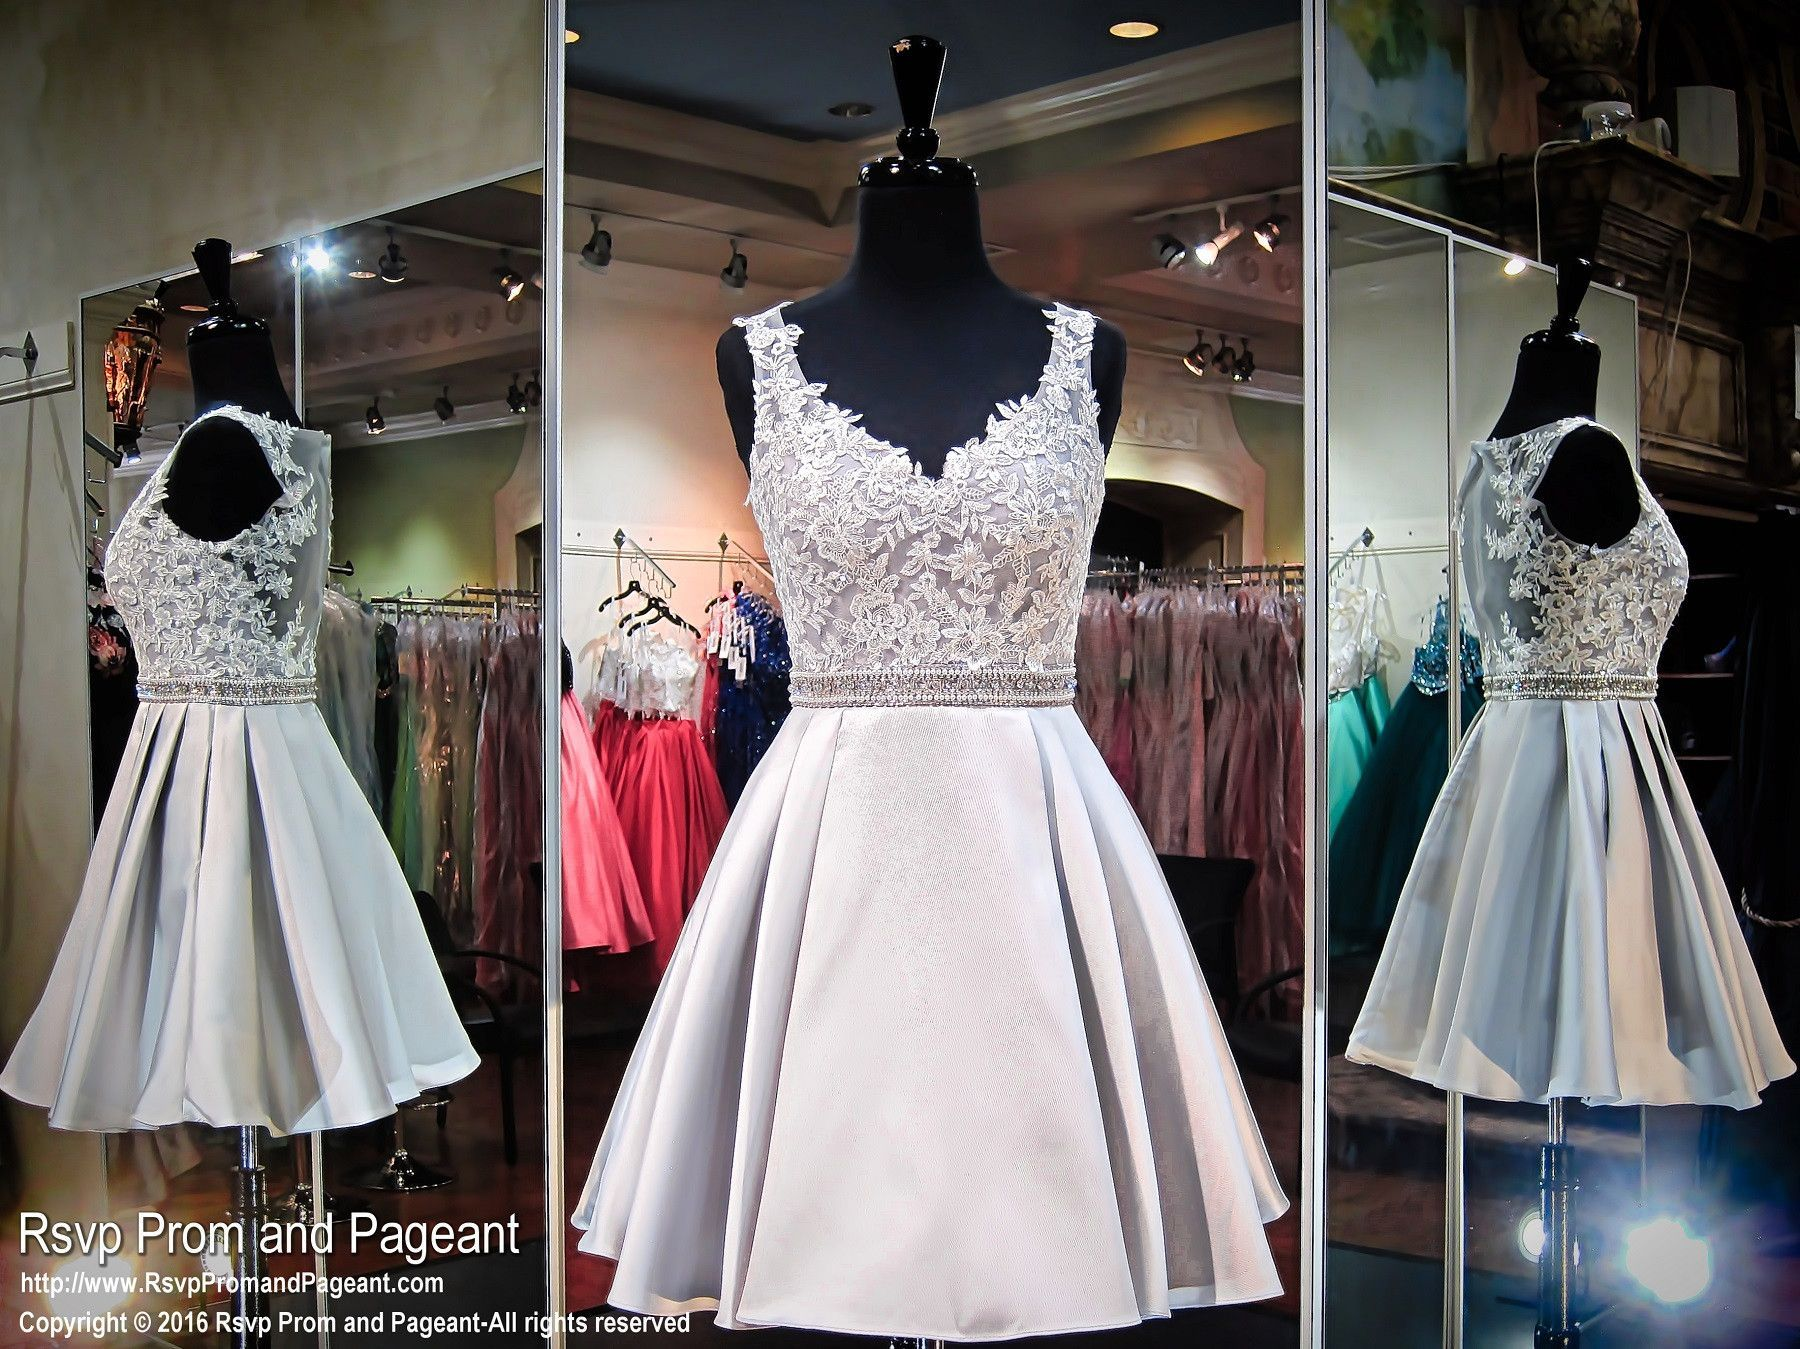 This stunning silver dress with a lace bodice is perfect to dance